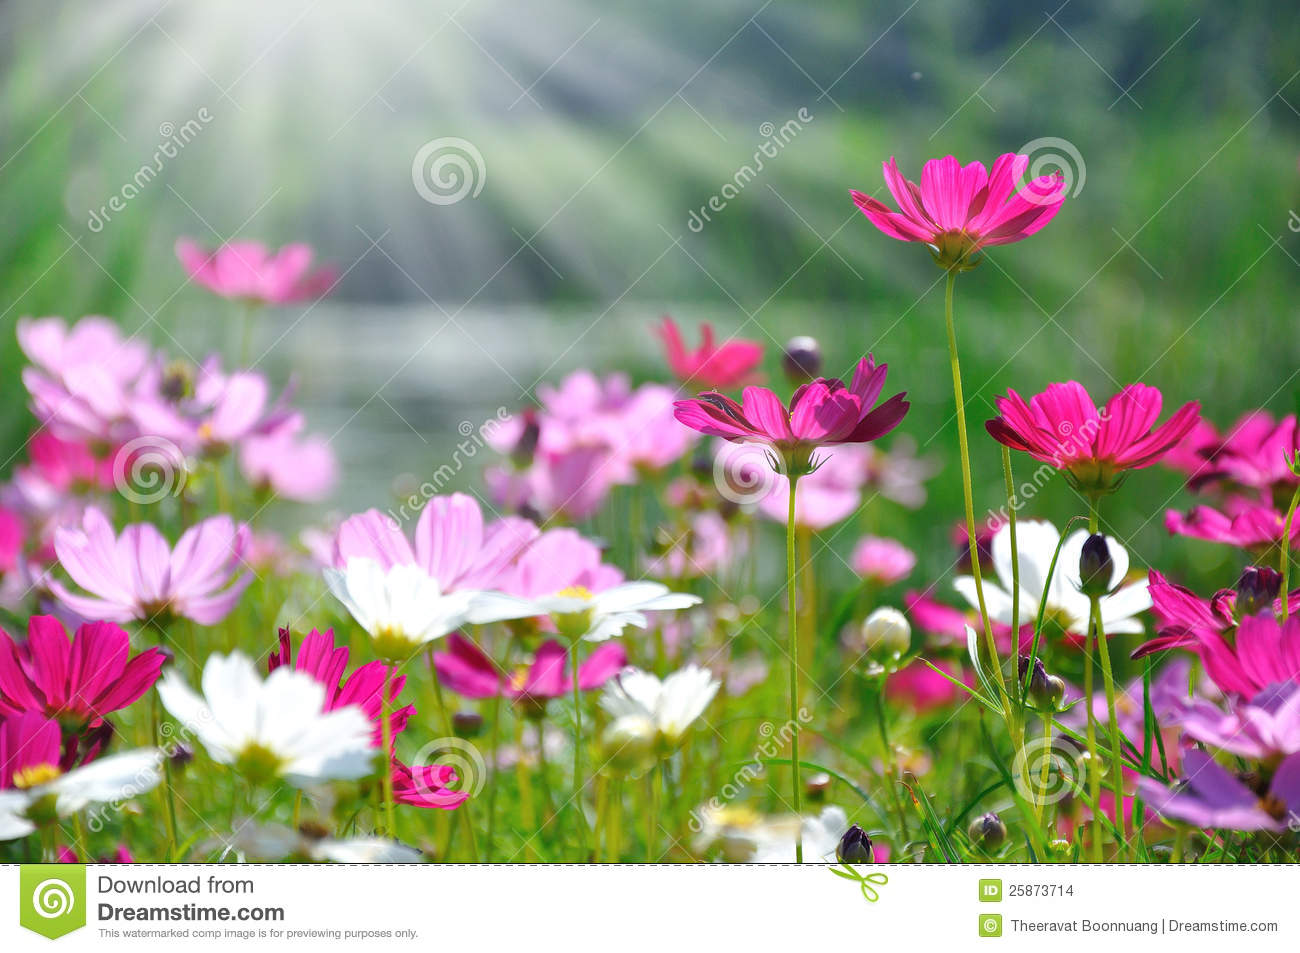 Colorful Daisies In Grass Field Stock Images - Image: 25873714